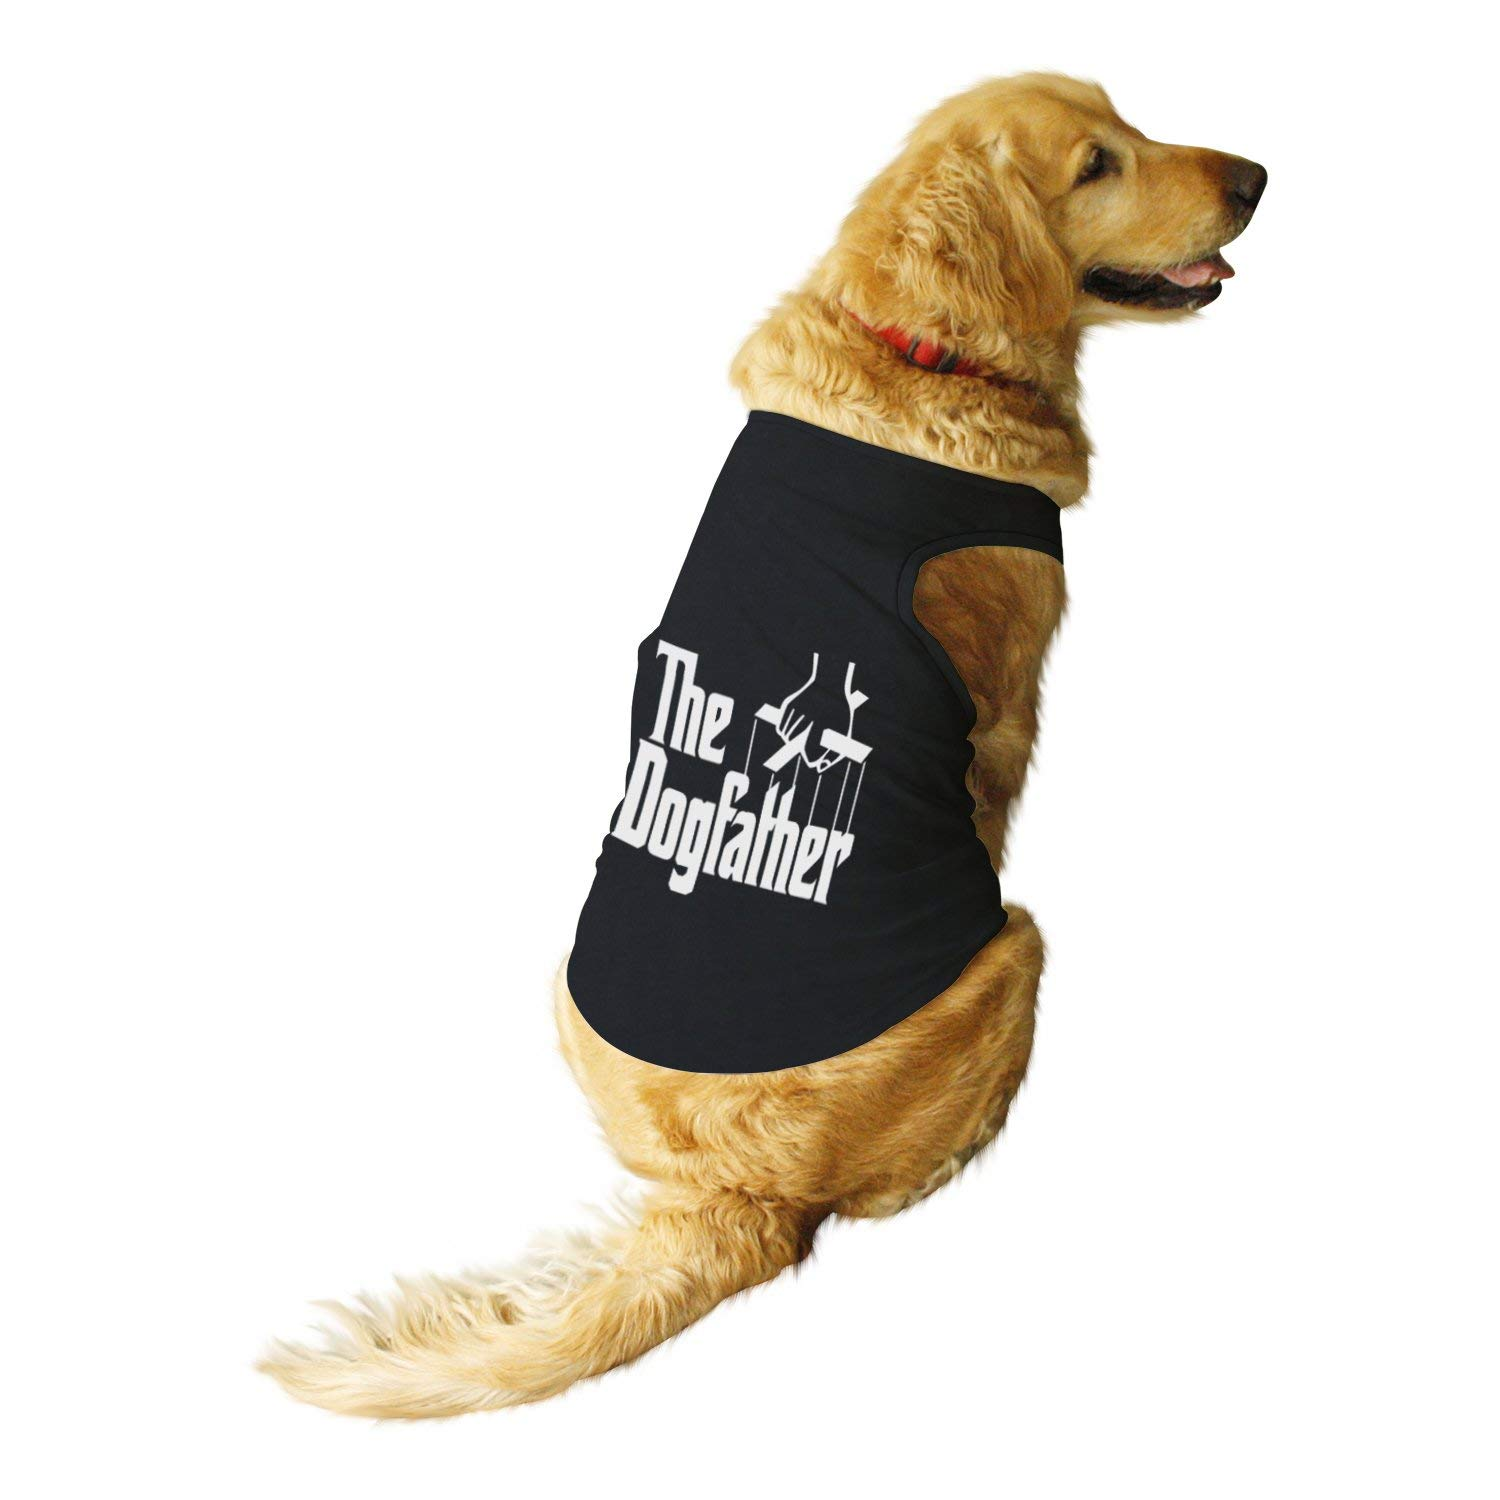 Dog father Printed by Ruse-Round Neck Sleeveless Vest Tank T-Shirt